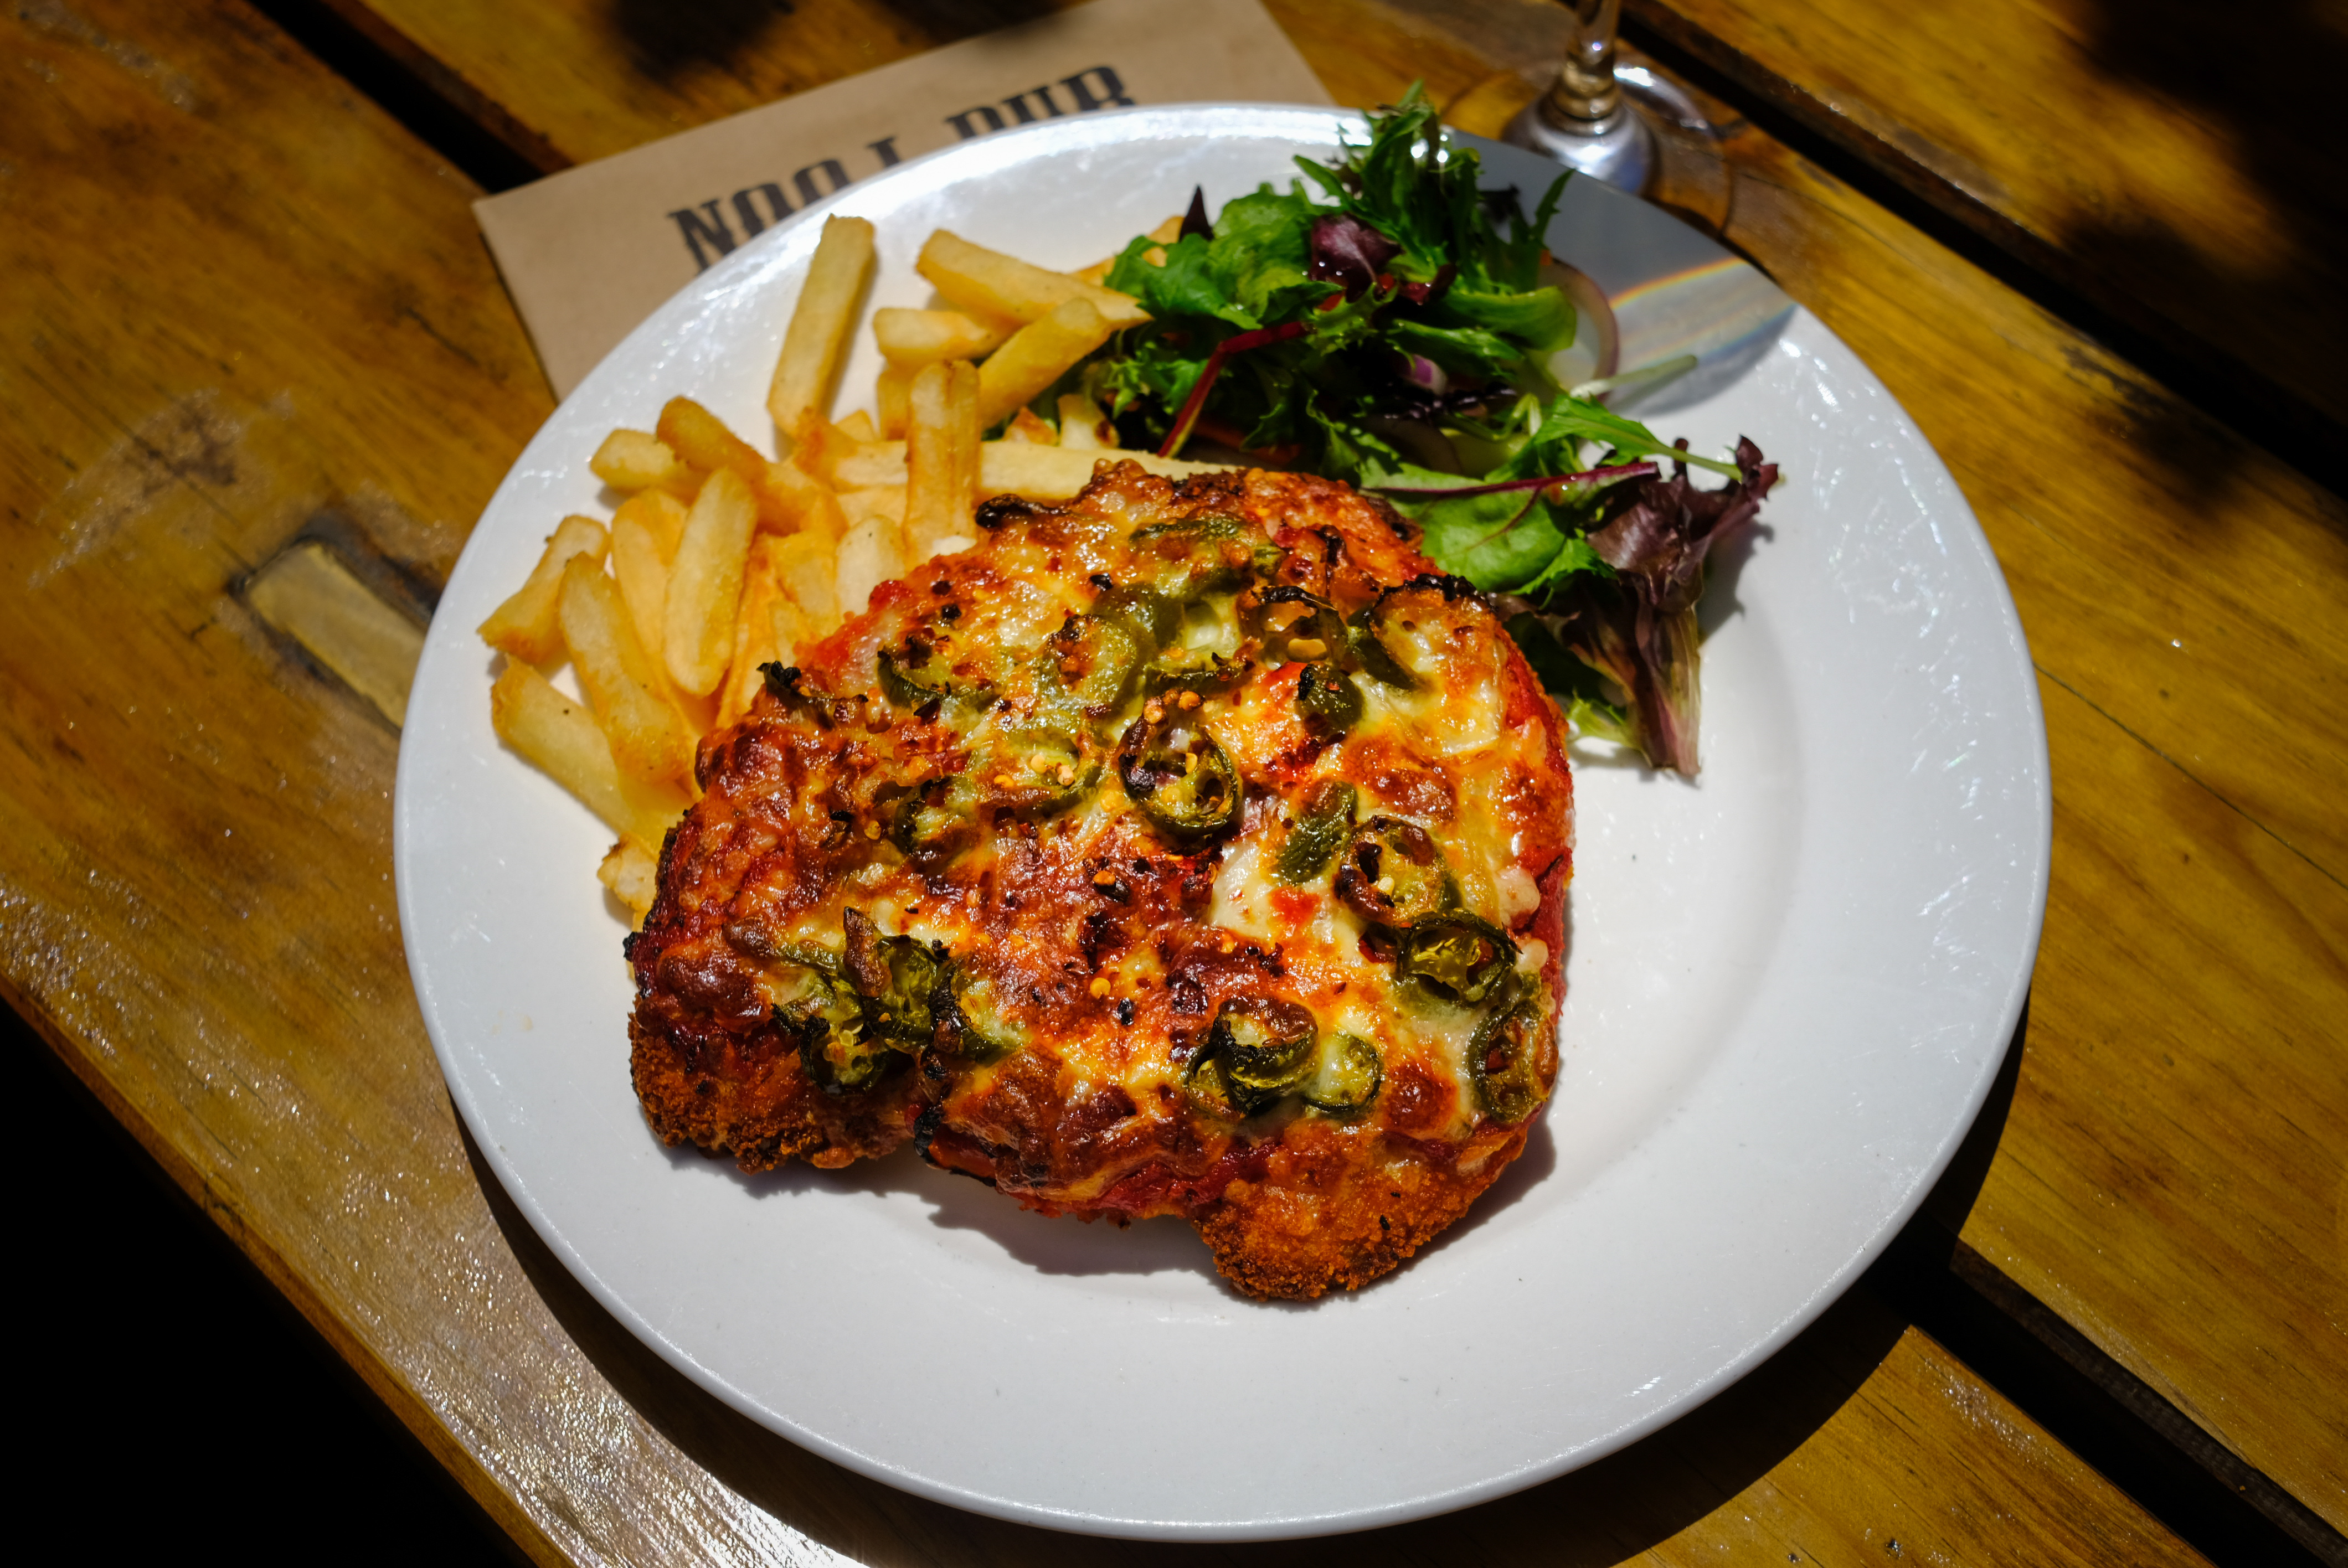 Scorcher reviews: Noojee Hotel — 'country pub classic with a couple of curveballs'